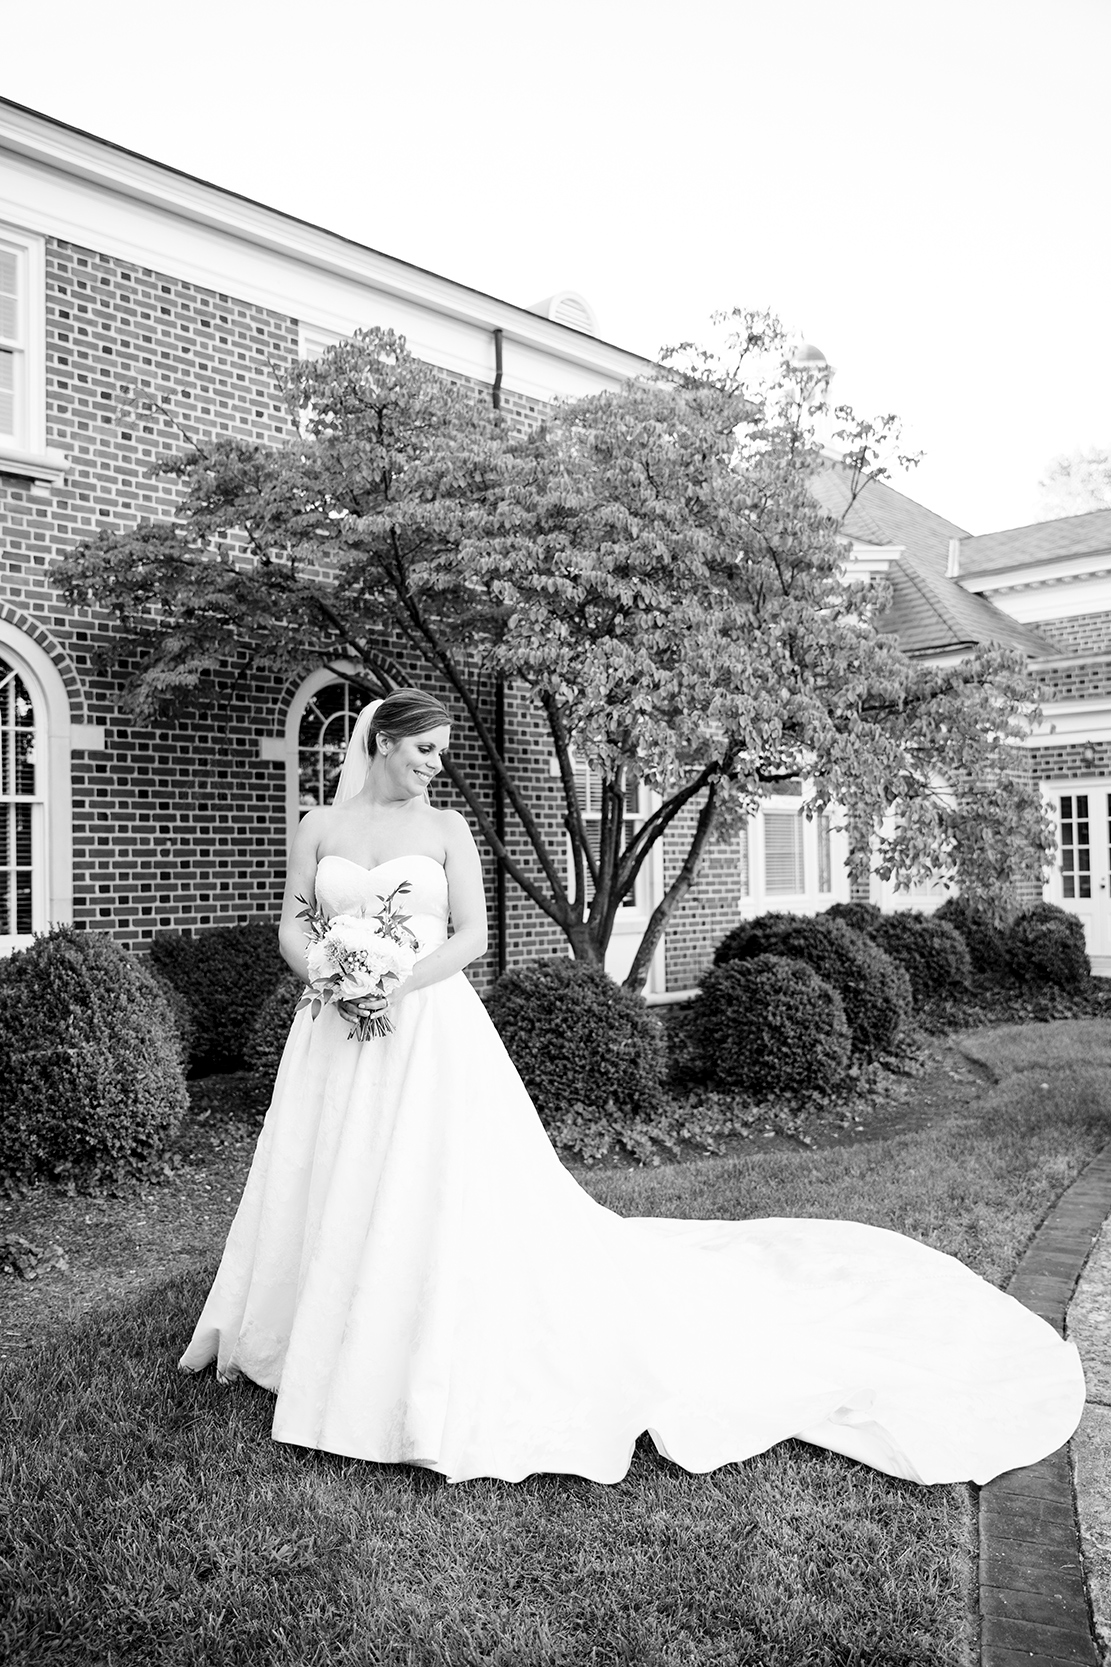 Beth  Blakleys Wedding at The Boonsboro Country Club - Image Property of www.j-dphoto.com